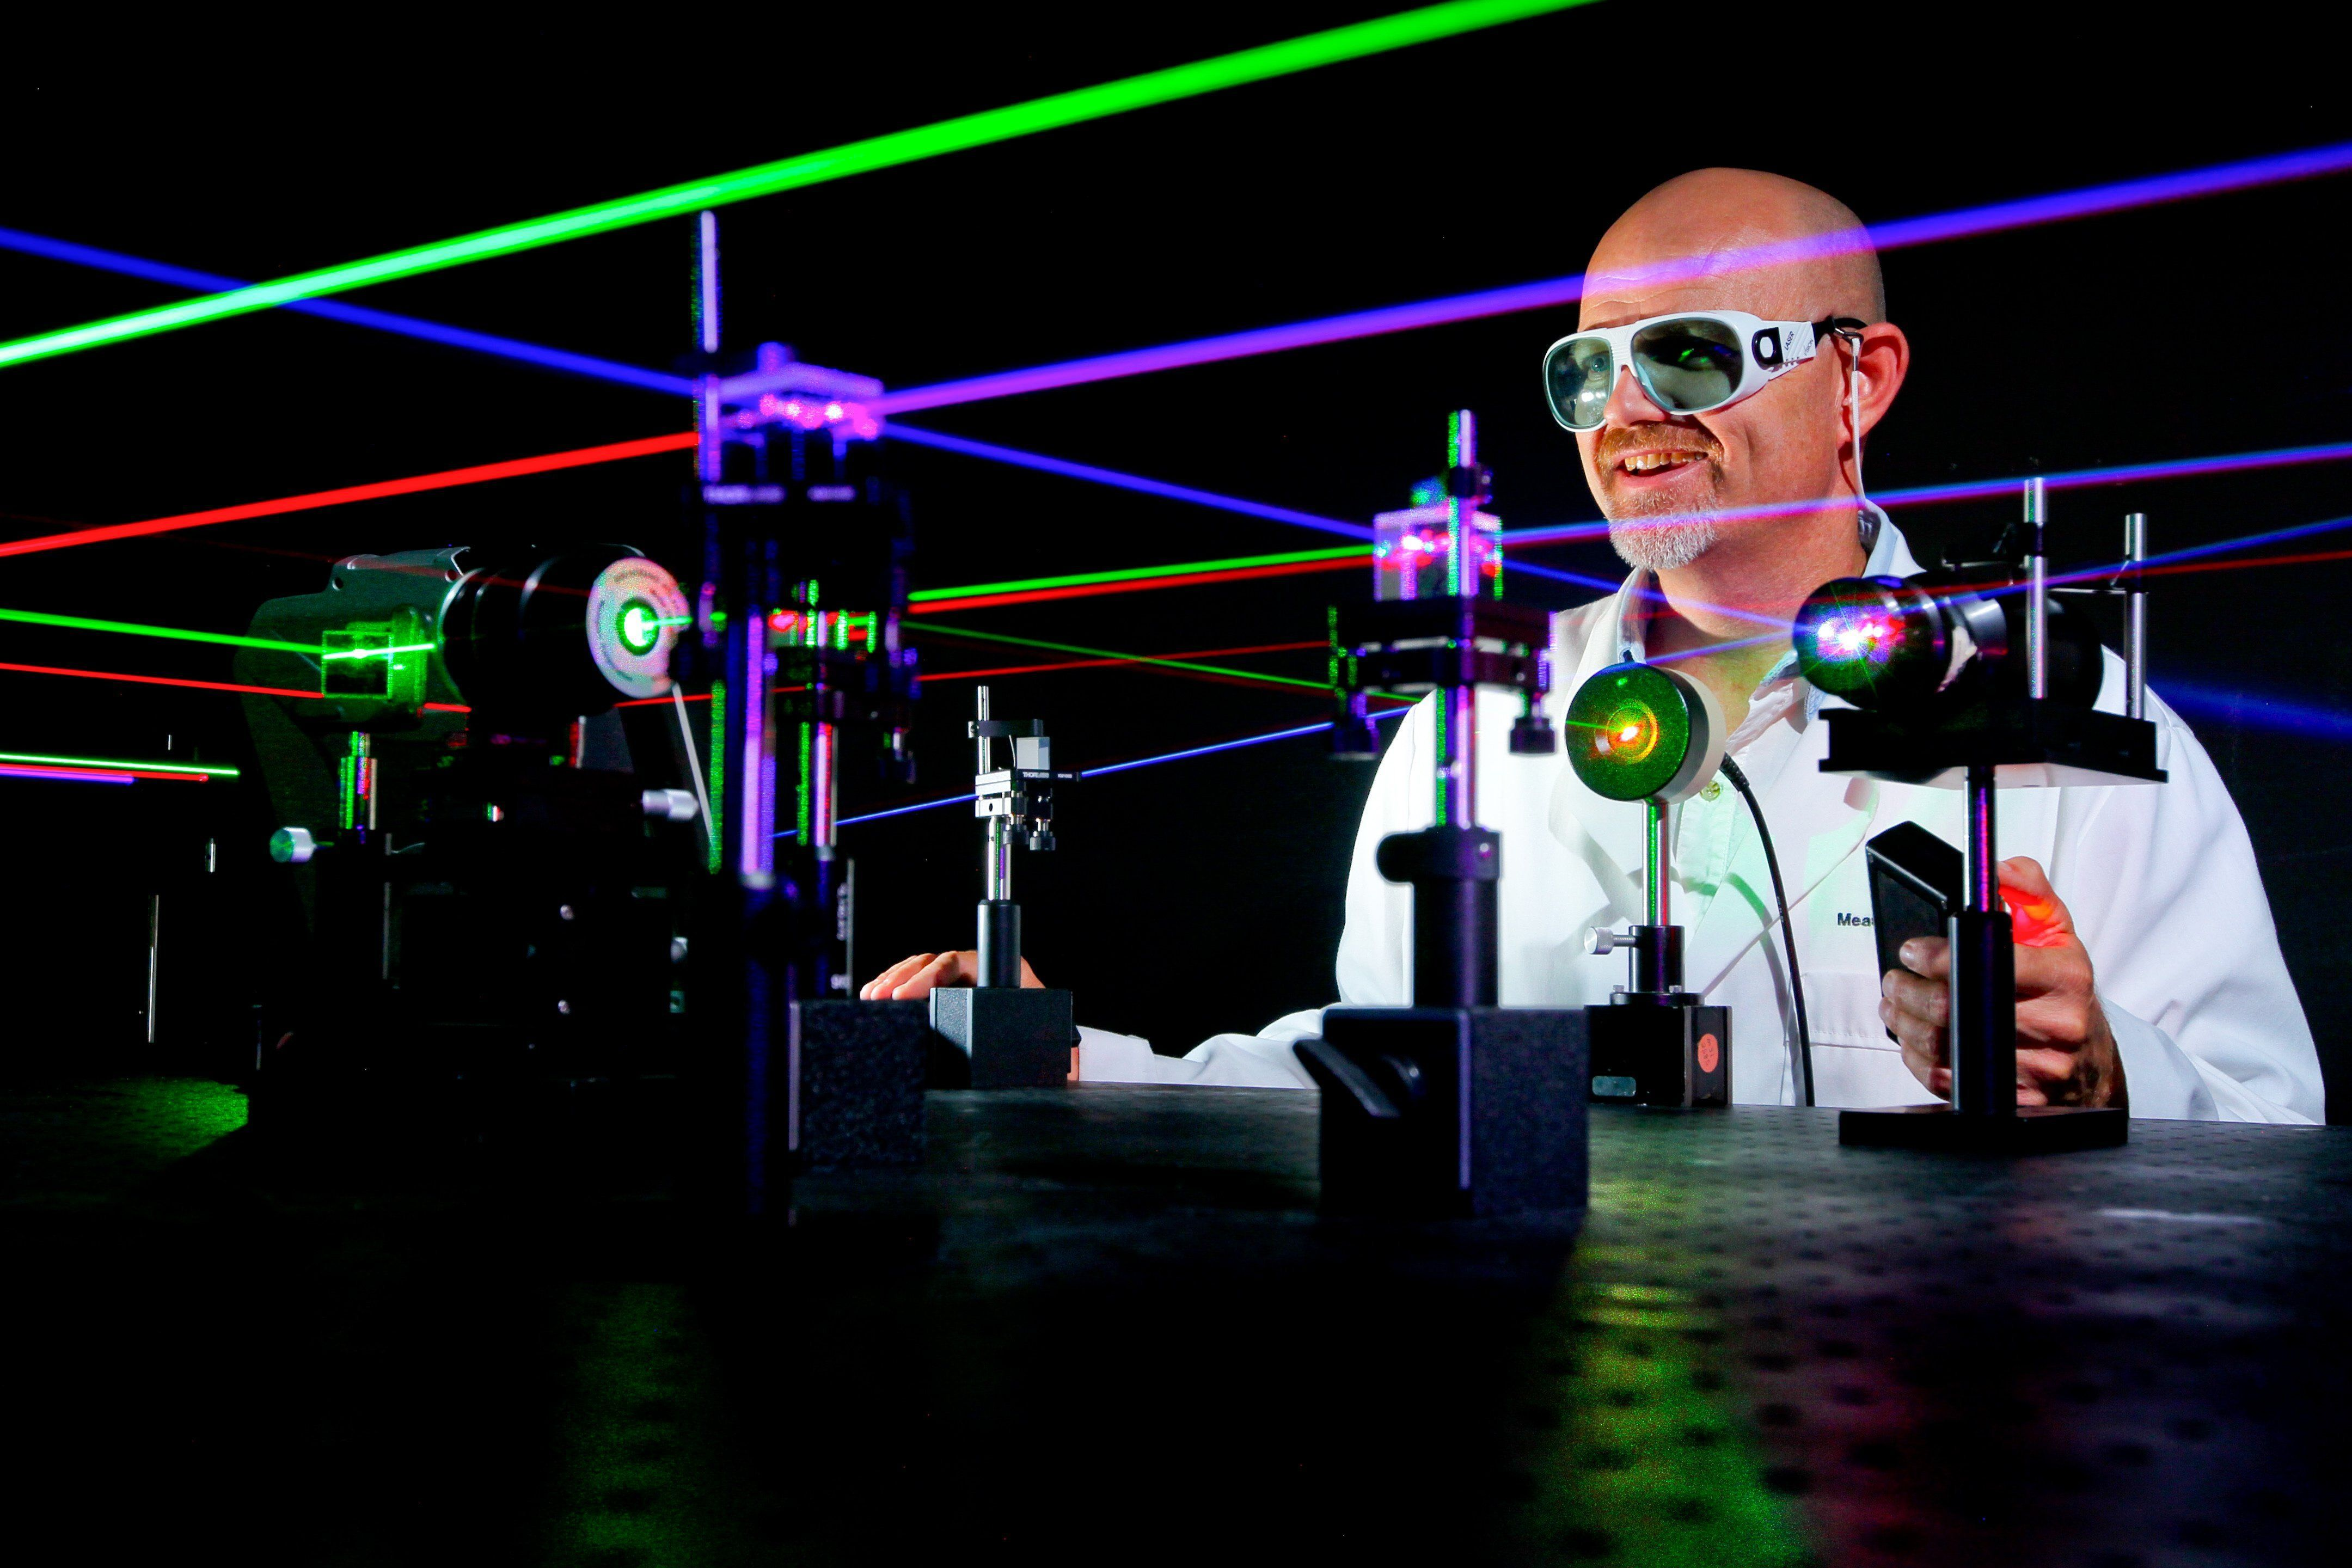 colored lasers [Naval Surface Warfare Center (NSWC), Corona Division]